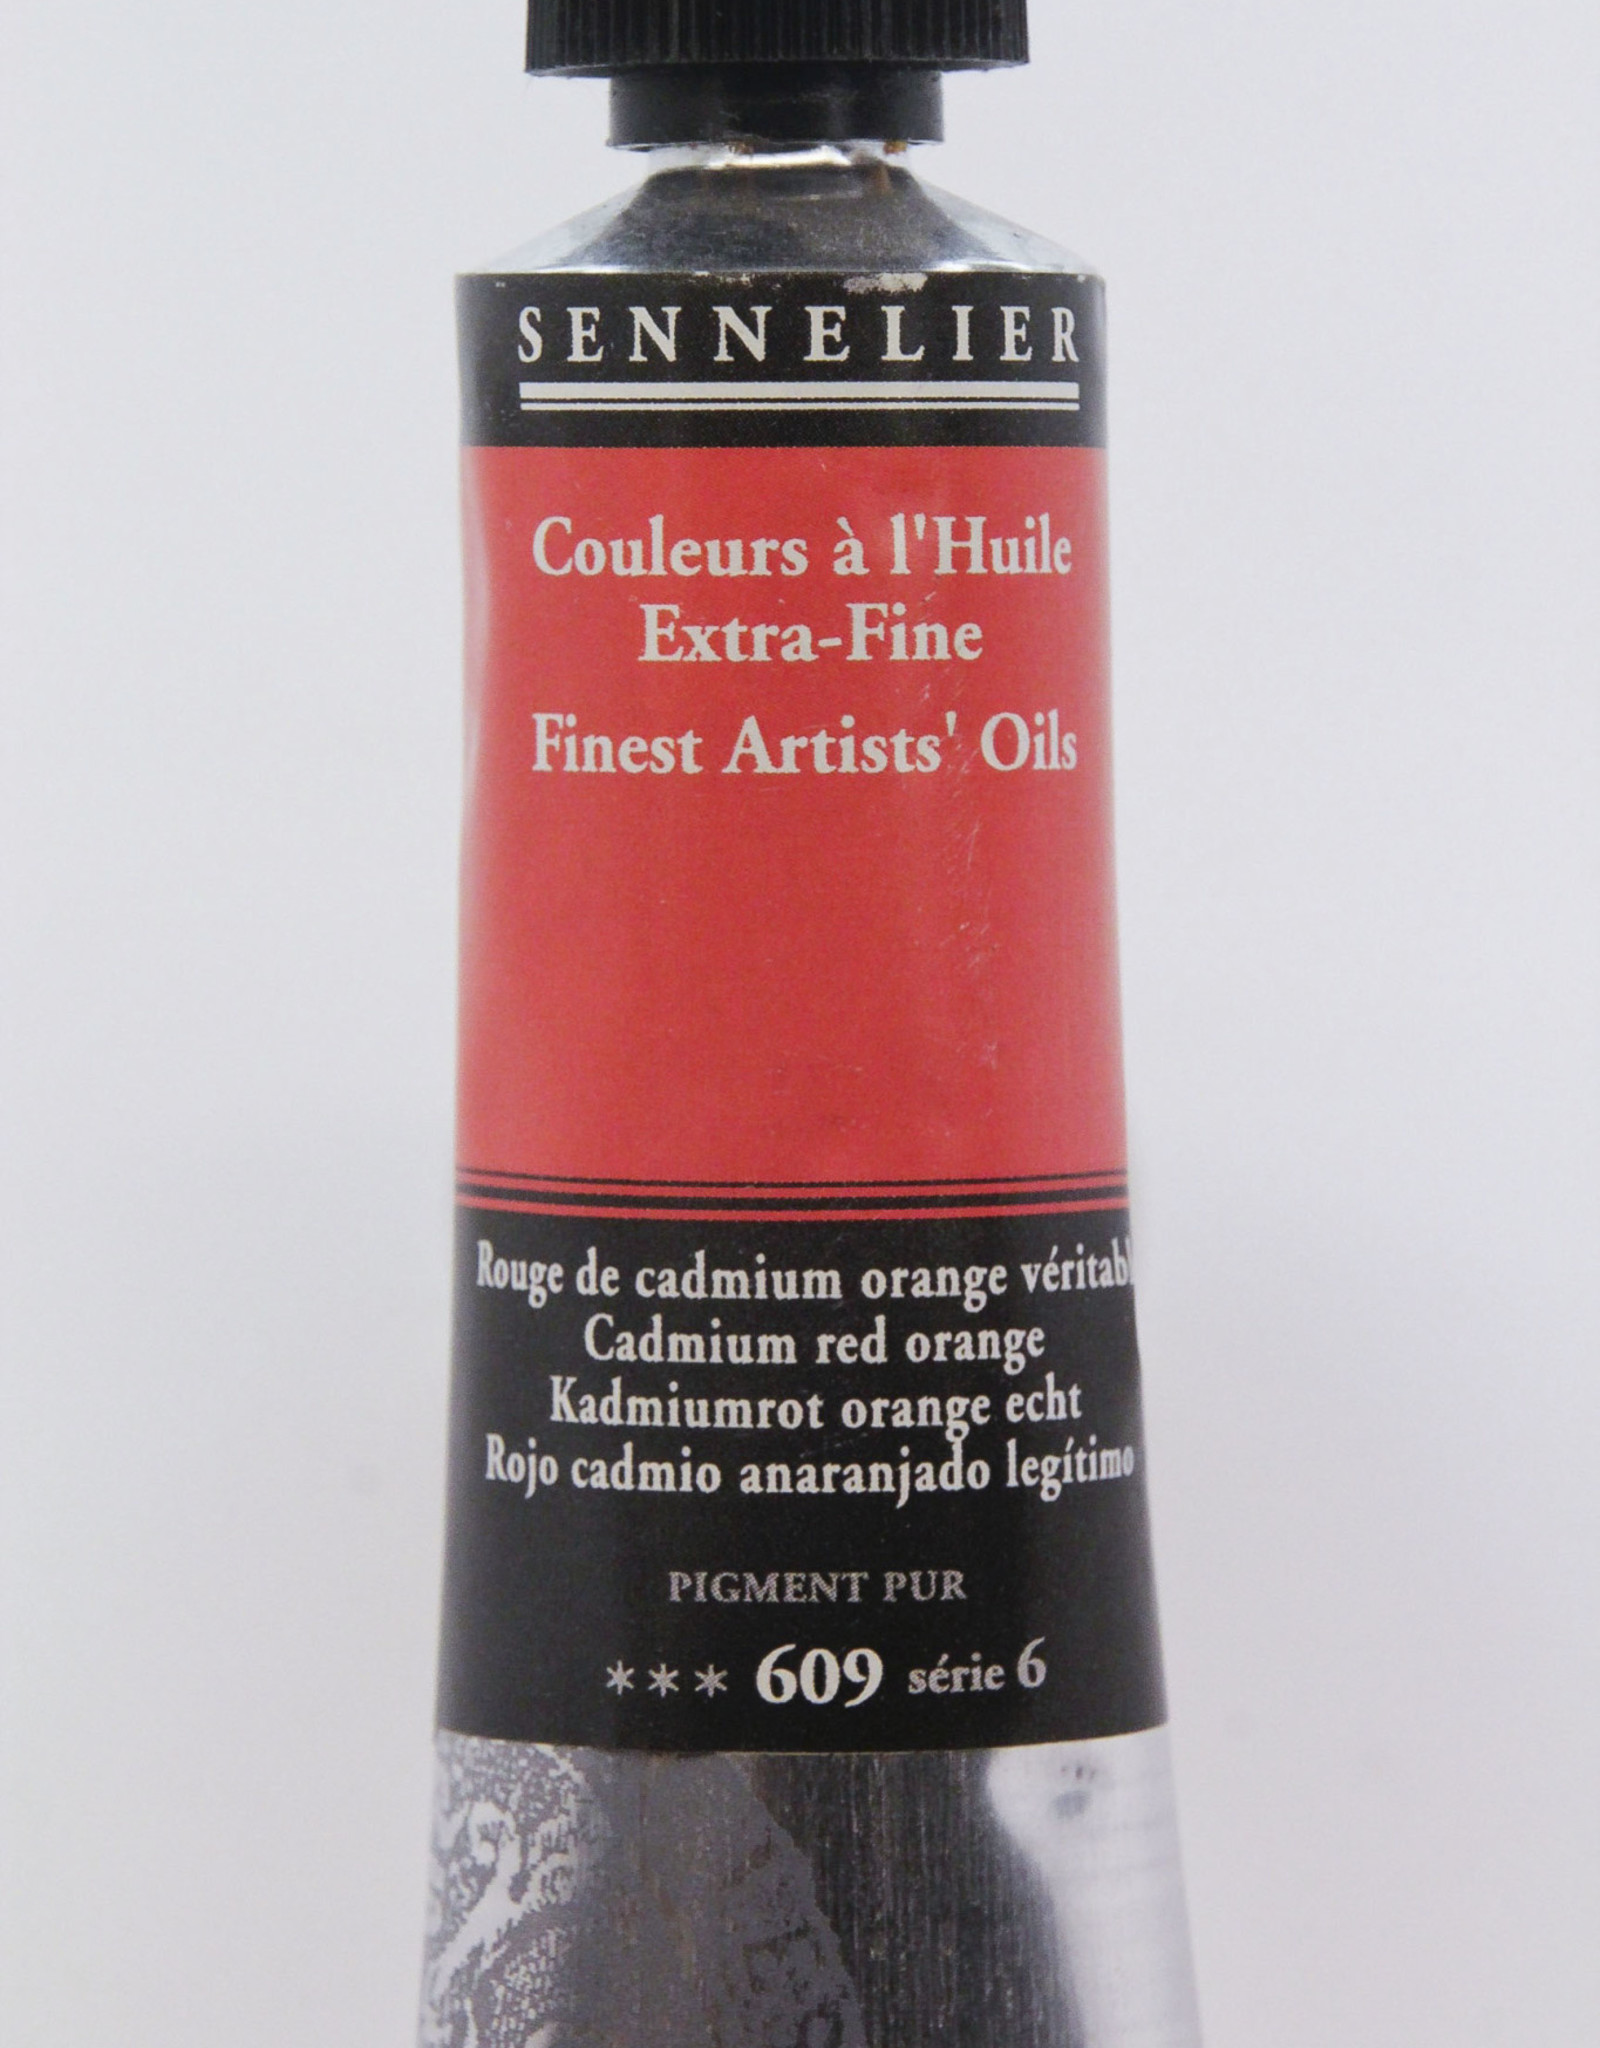 Sennelier, Fine Artists' Oil Paint, Cadmium Red Orange, 609, 40ml Tube, Series 6